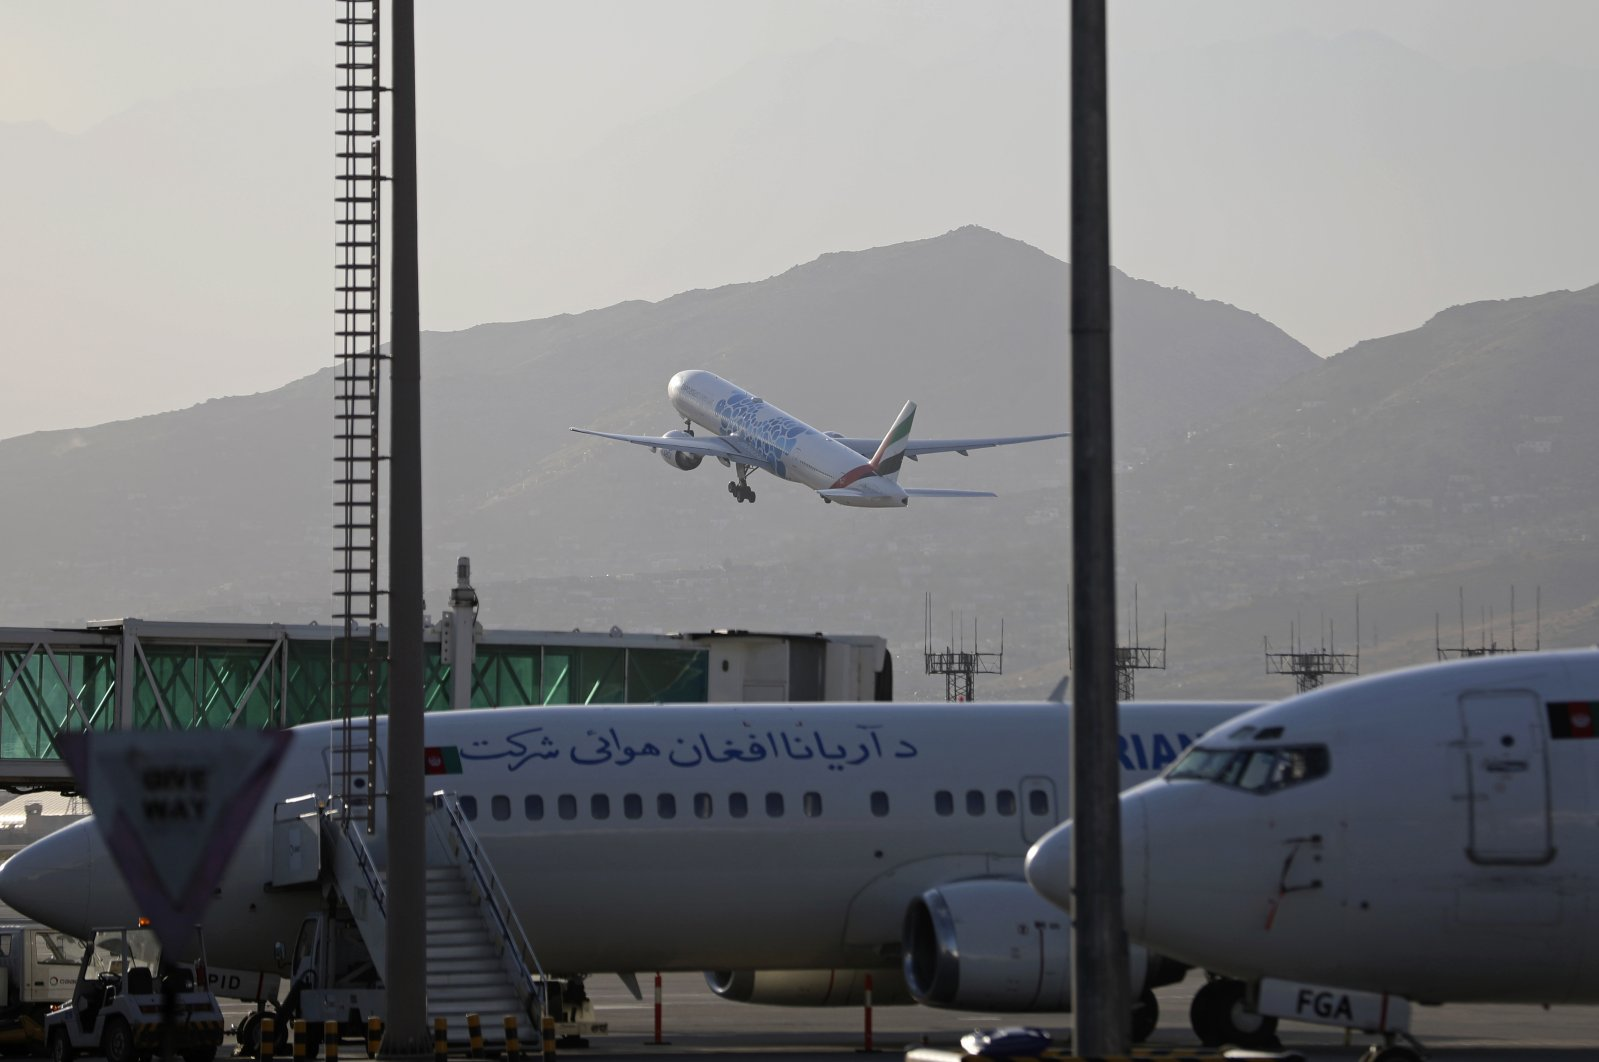 A plane takes off from Hamid Karzai International Airport in Kabul, Afghanistan, Sunday, July 4, 2021.(AP Photo)